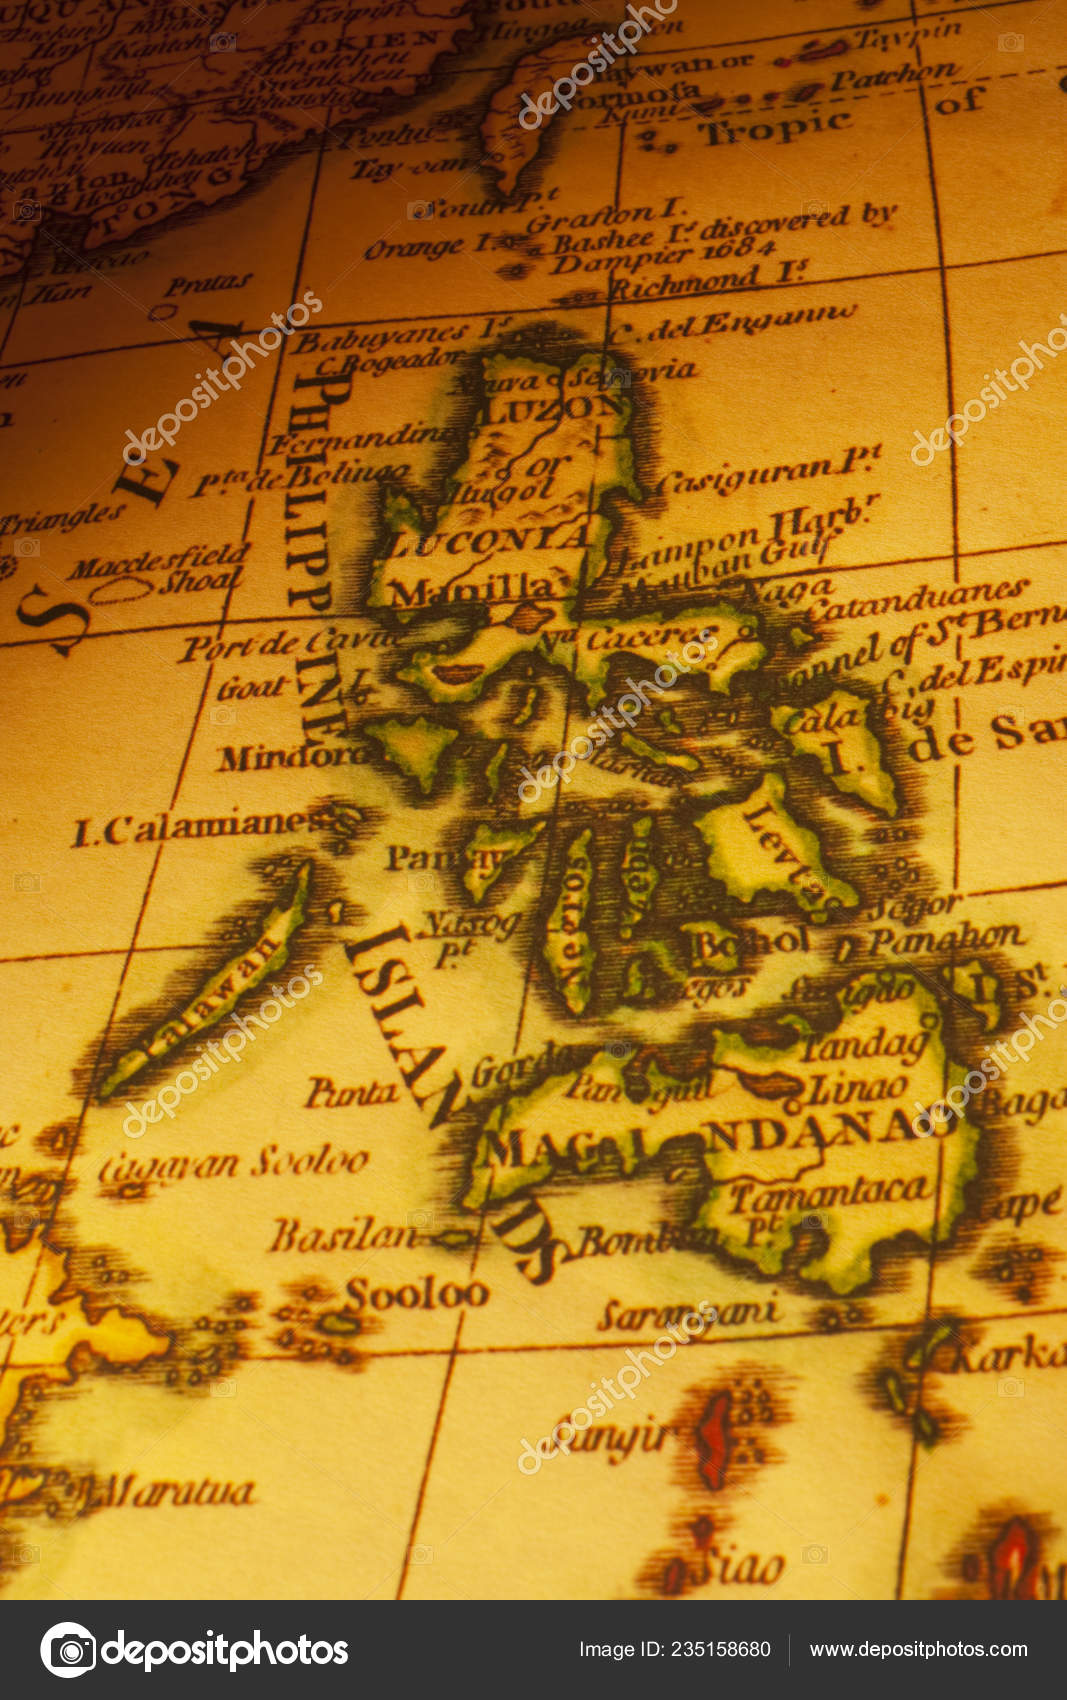 Old map of the philippines | Old Map Philippines Islands ...